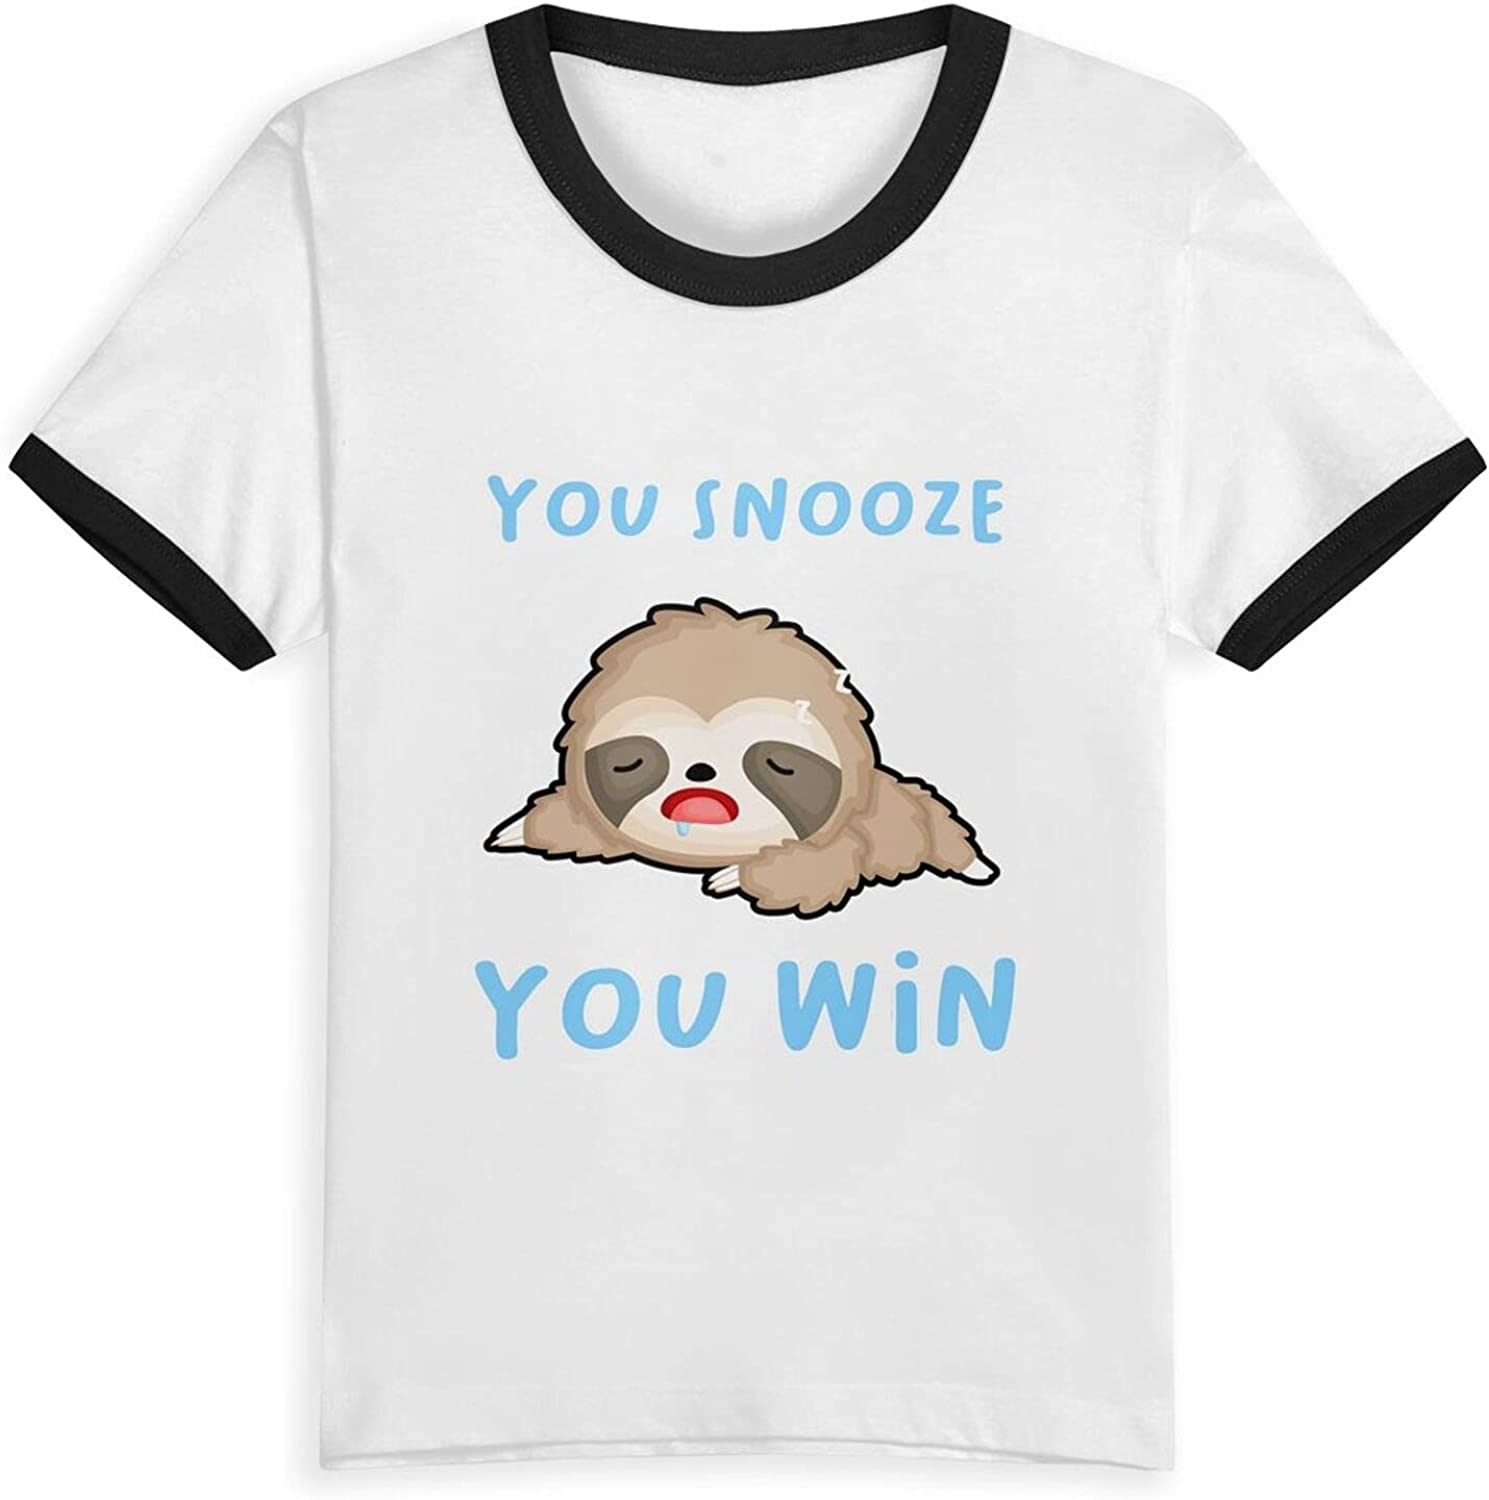 You Snooze You Win Sloth Spirit Animal T-Shirts Novelty for Kids Tees with Cool Designs